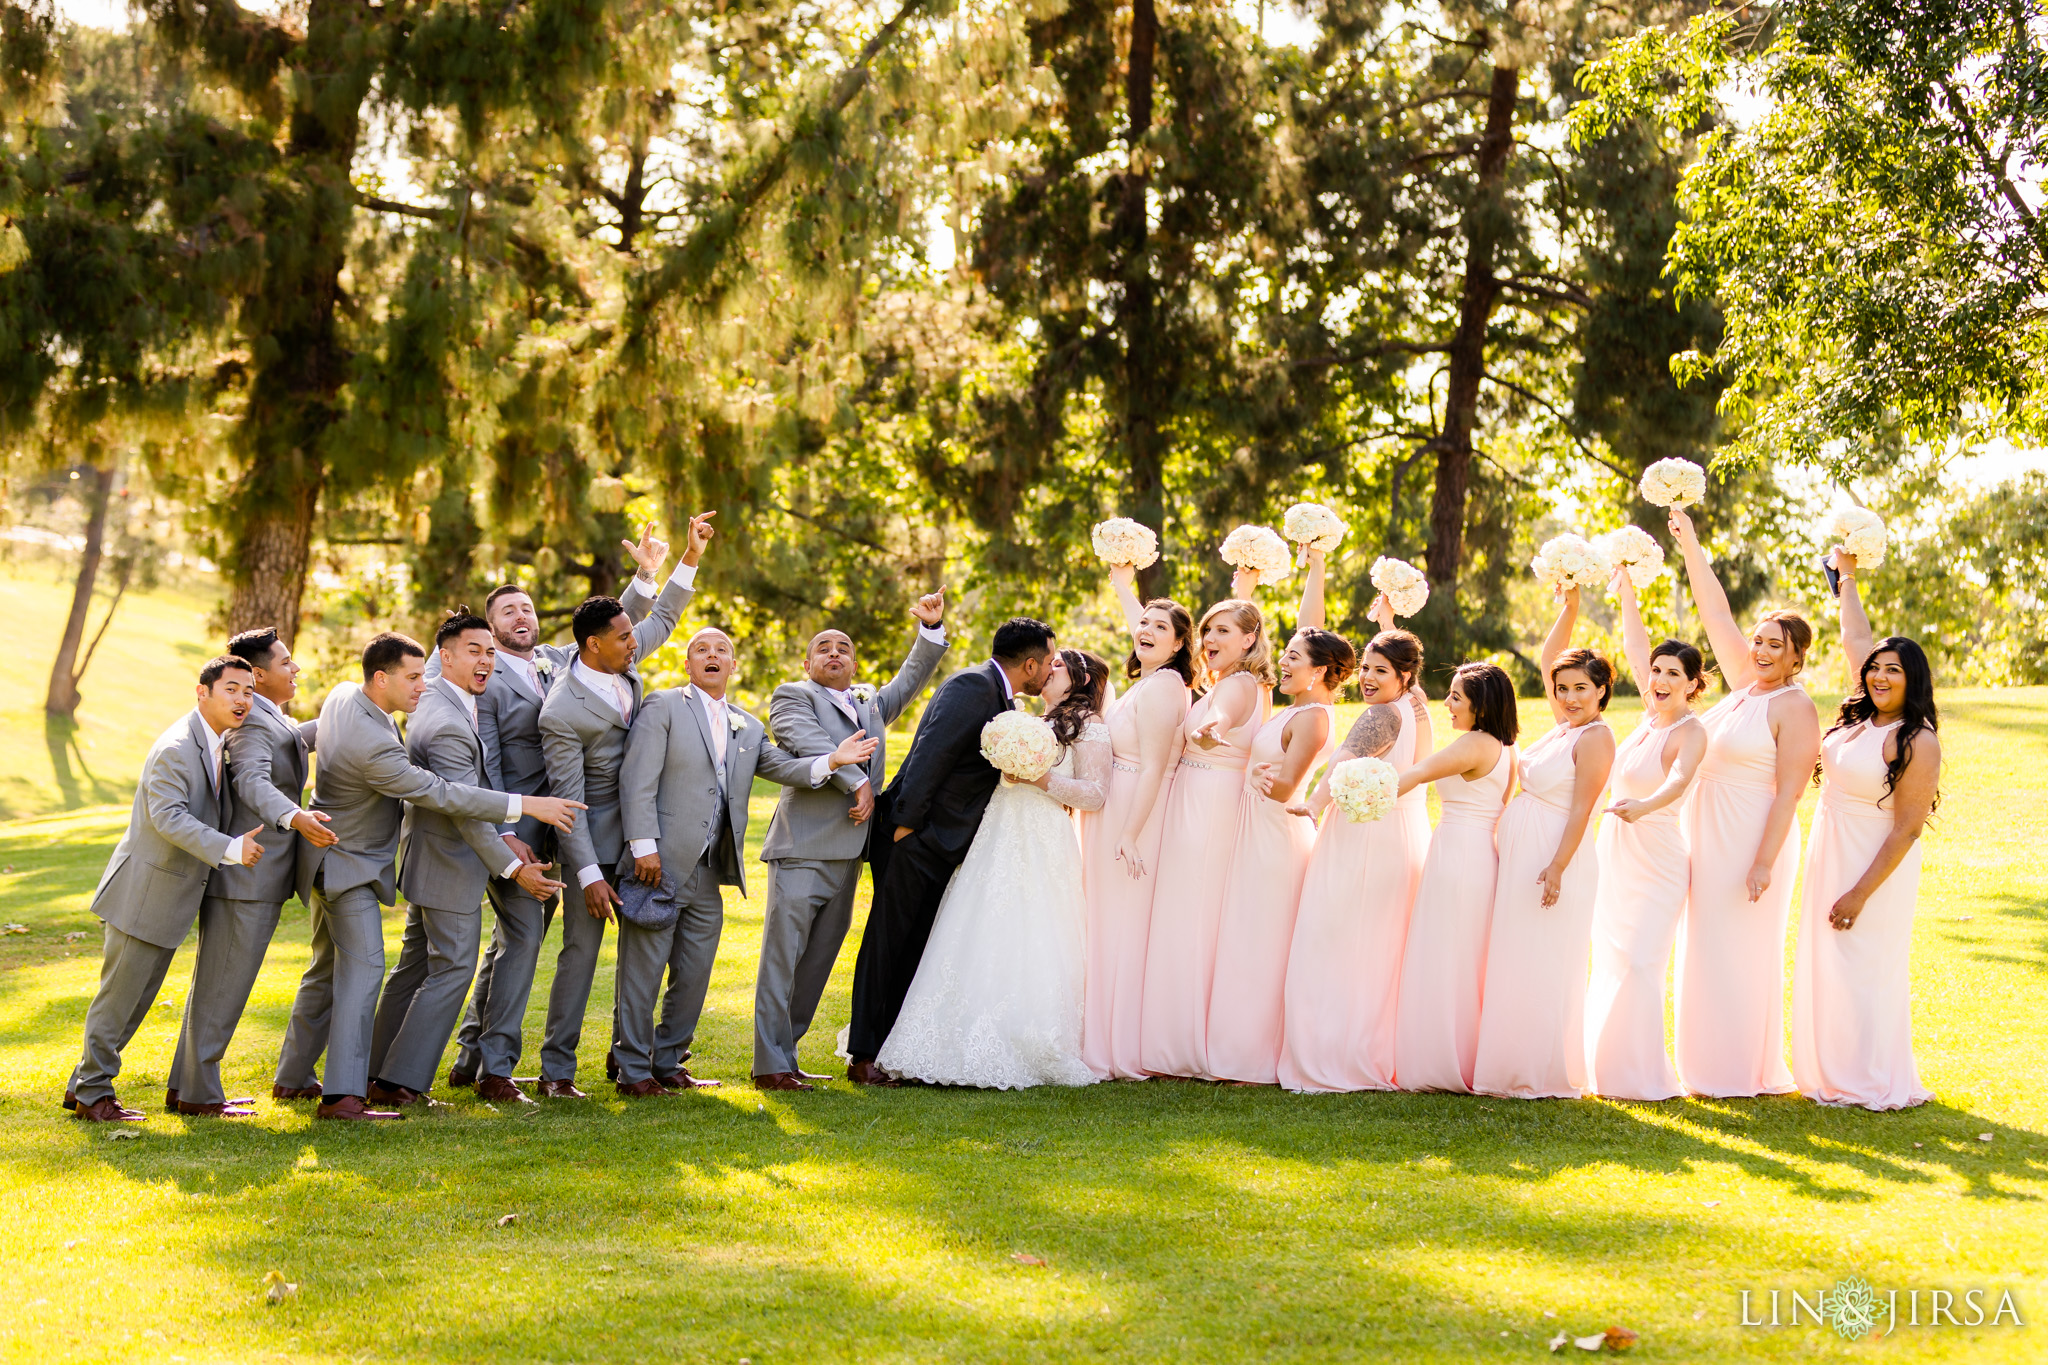 19 White House Banquets and Events Center Anaheim Wedding Photography